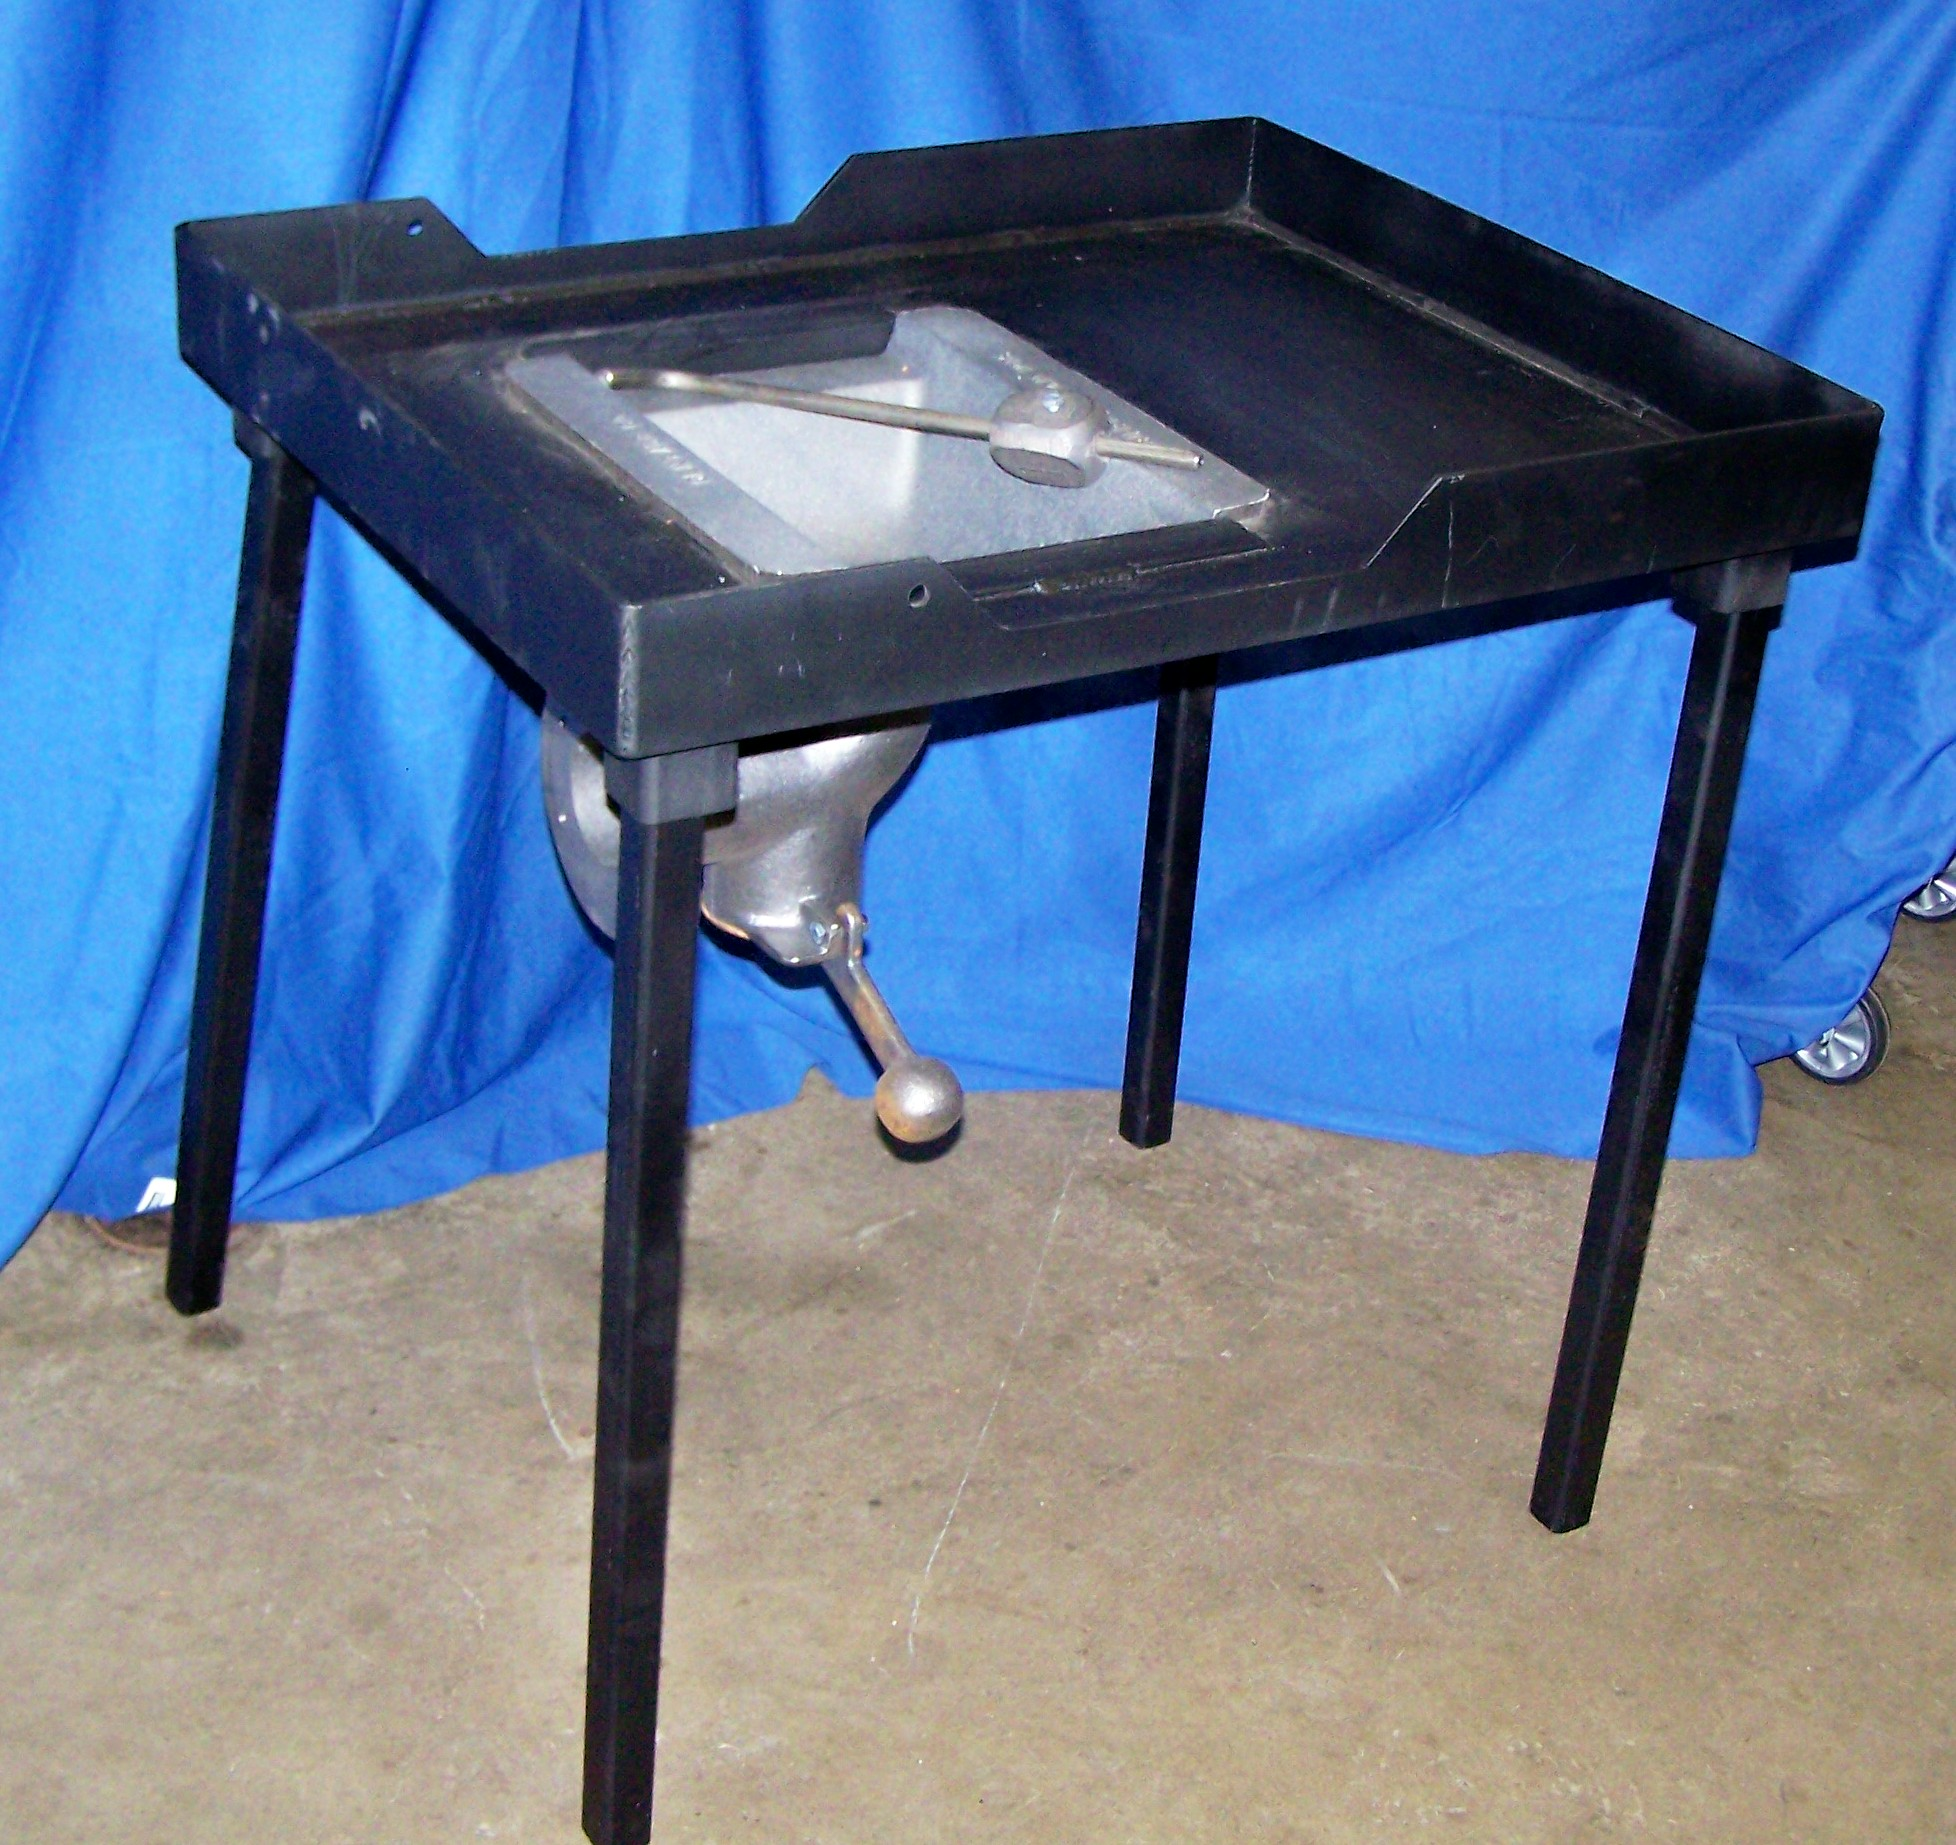 Centaur C36 Floor Model Coal Forge - Eligible for Free Shipping.  See Home Page for full details